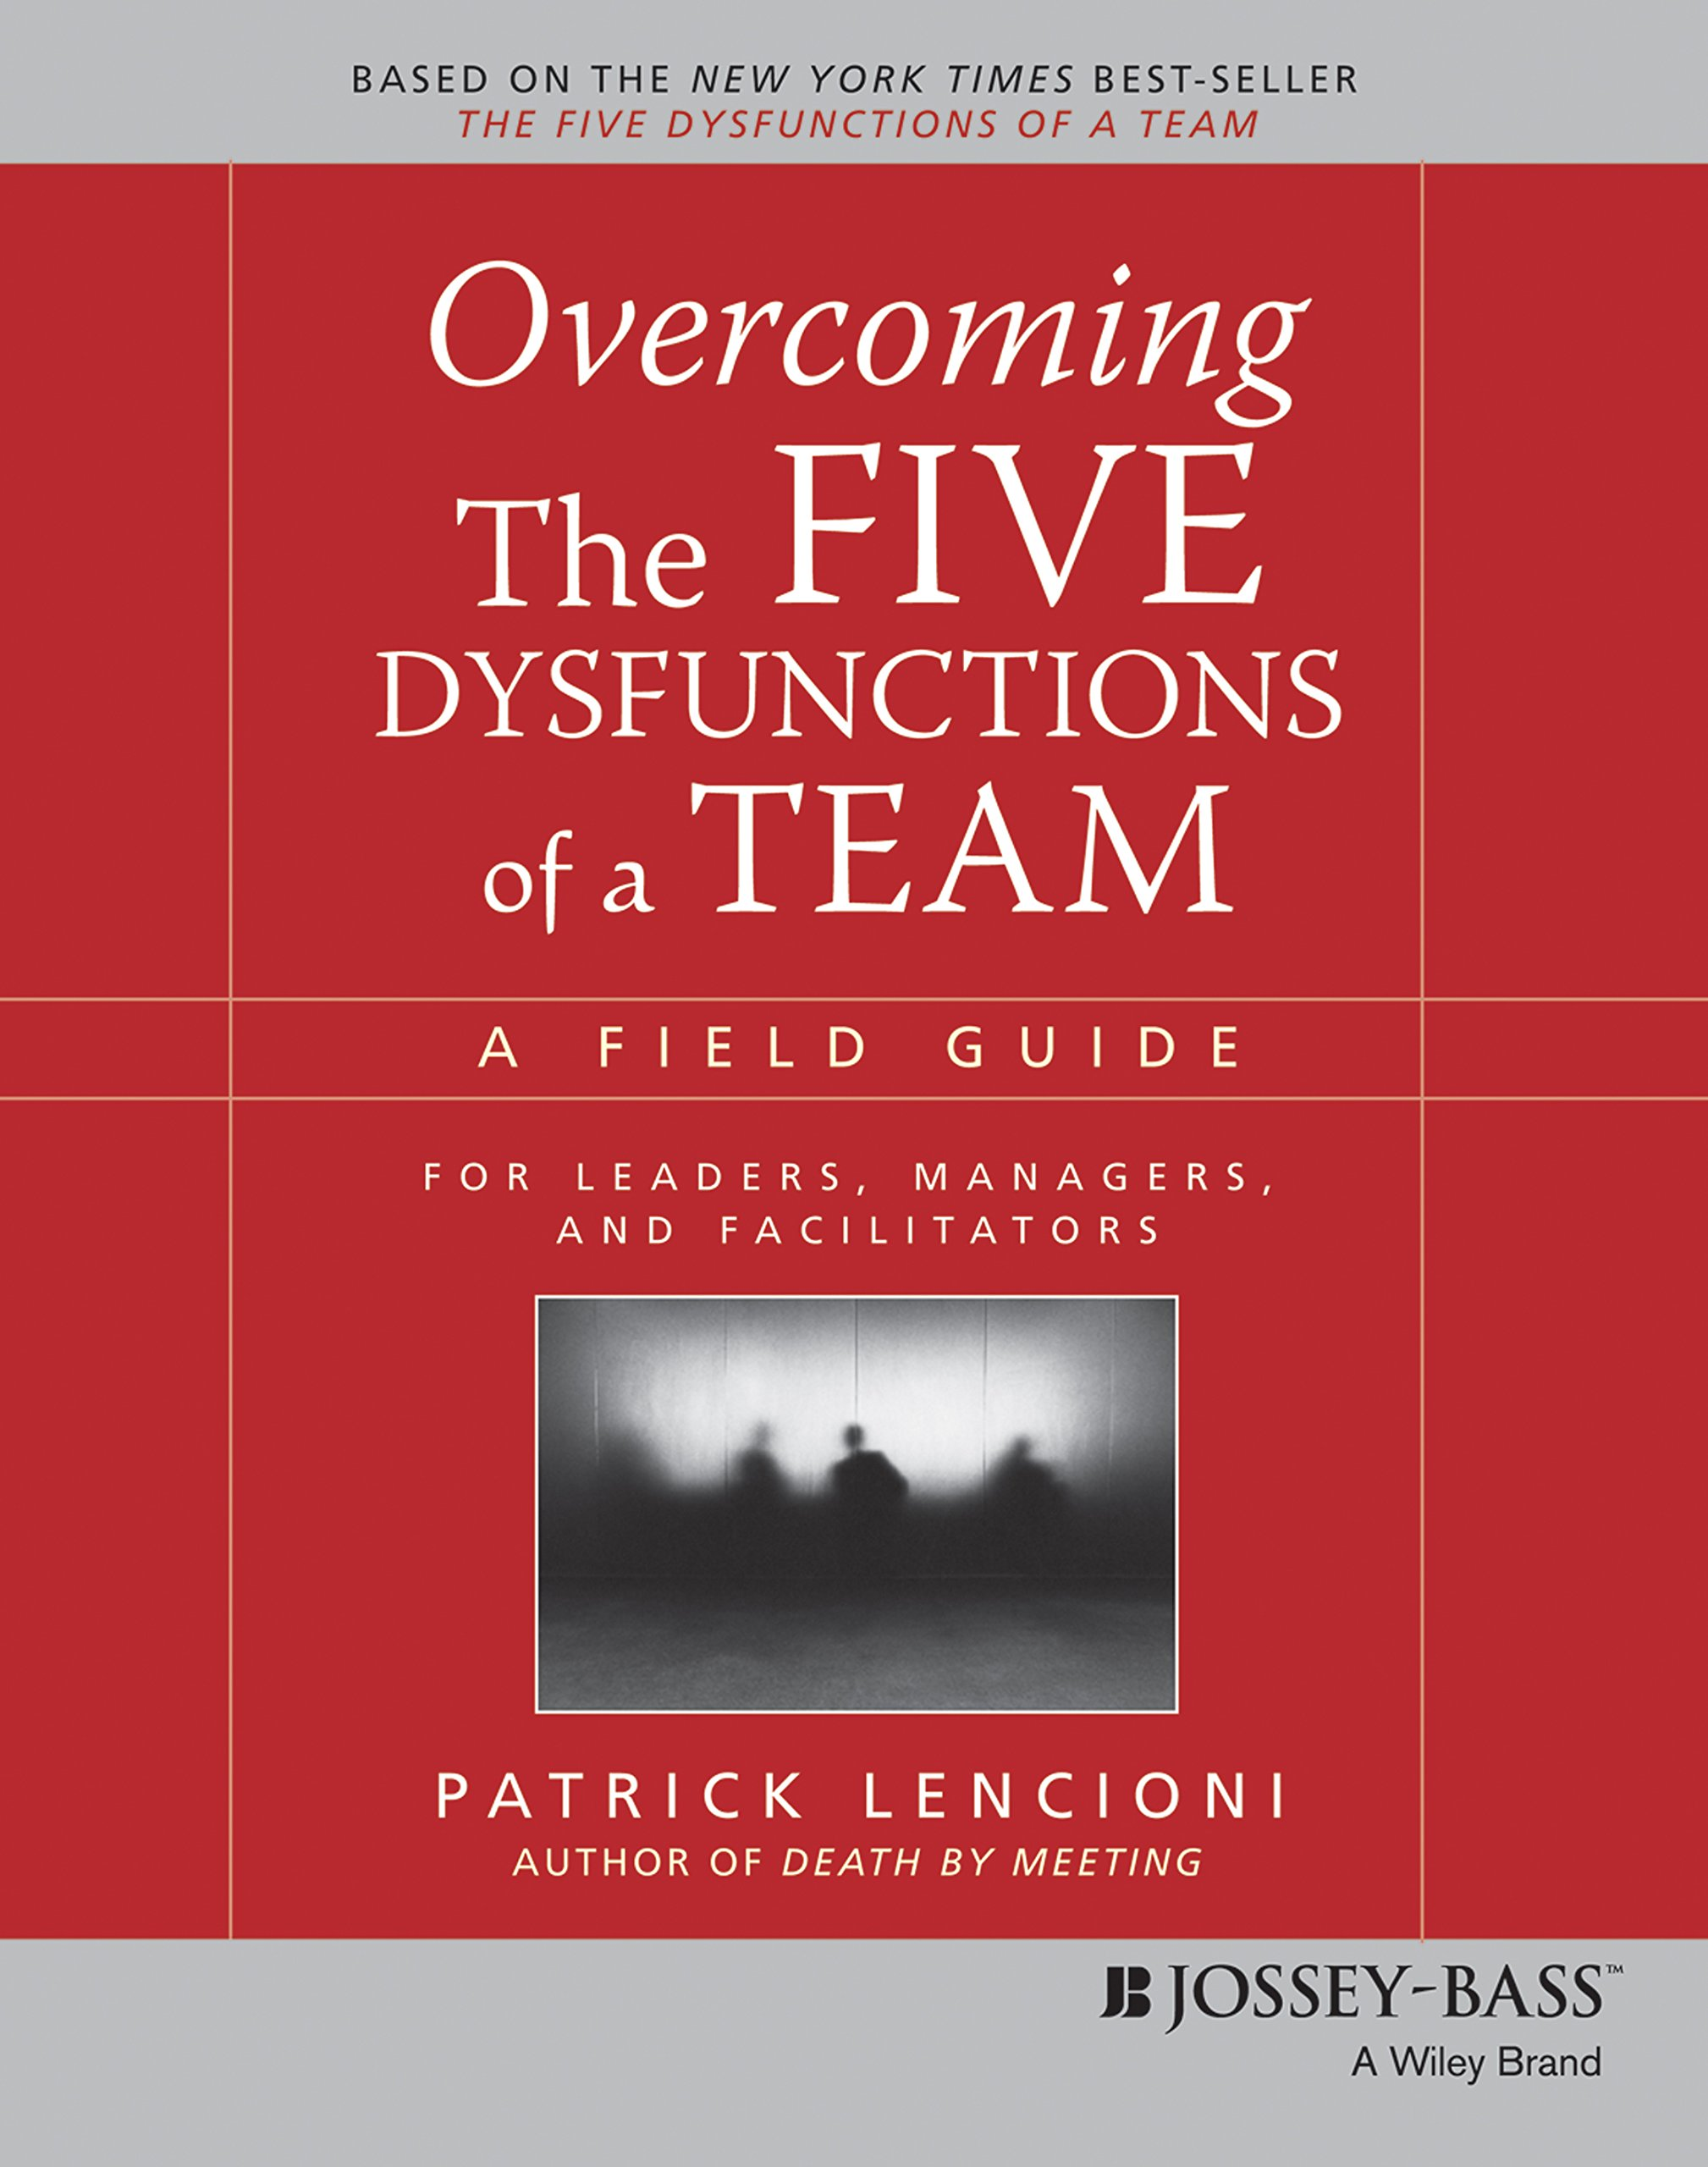 Image result for overcoming the five dysfunctions of a team